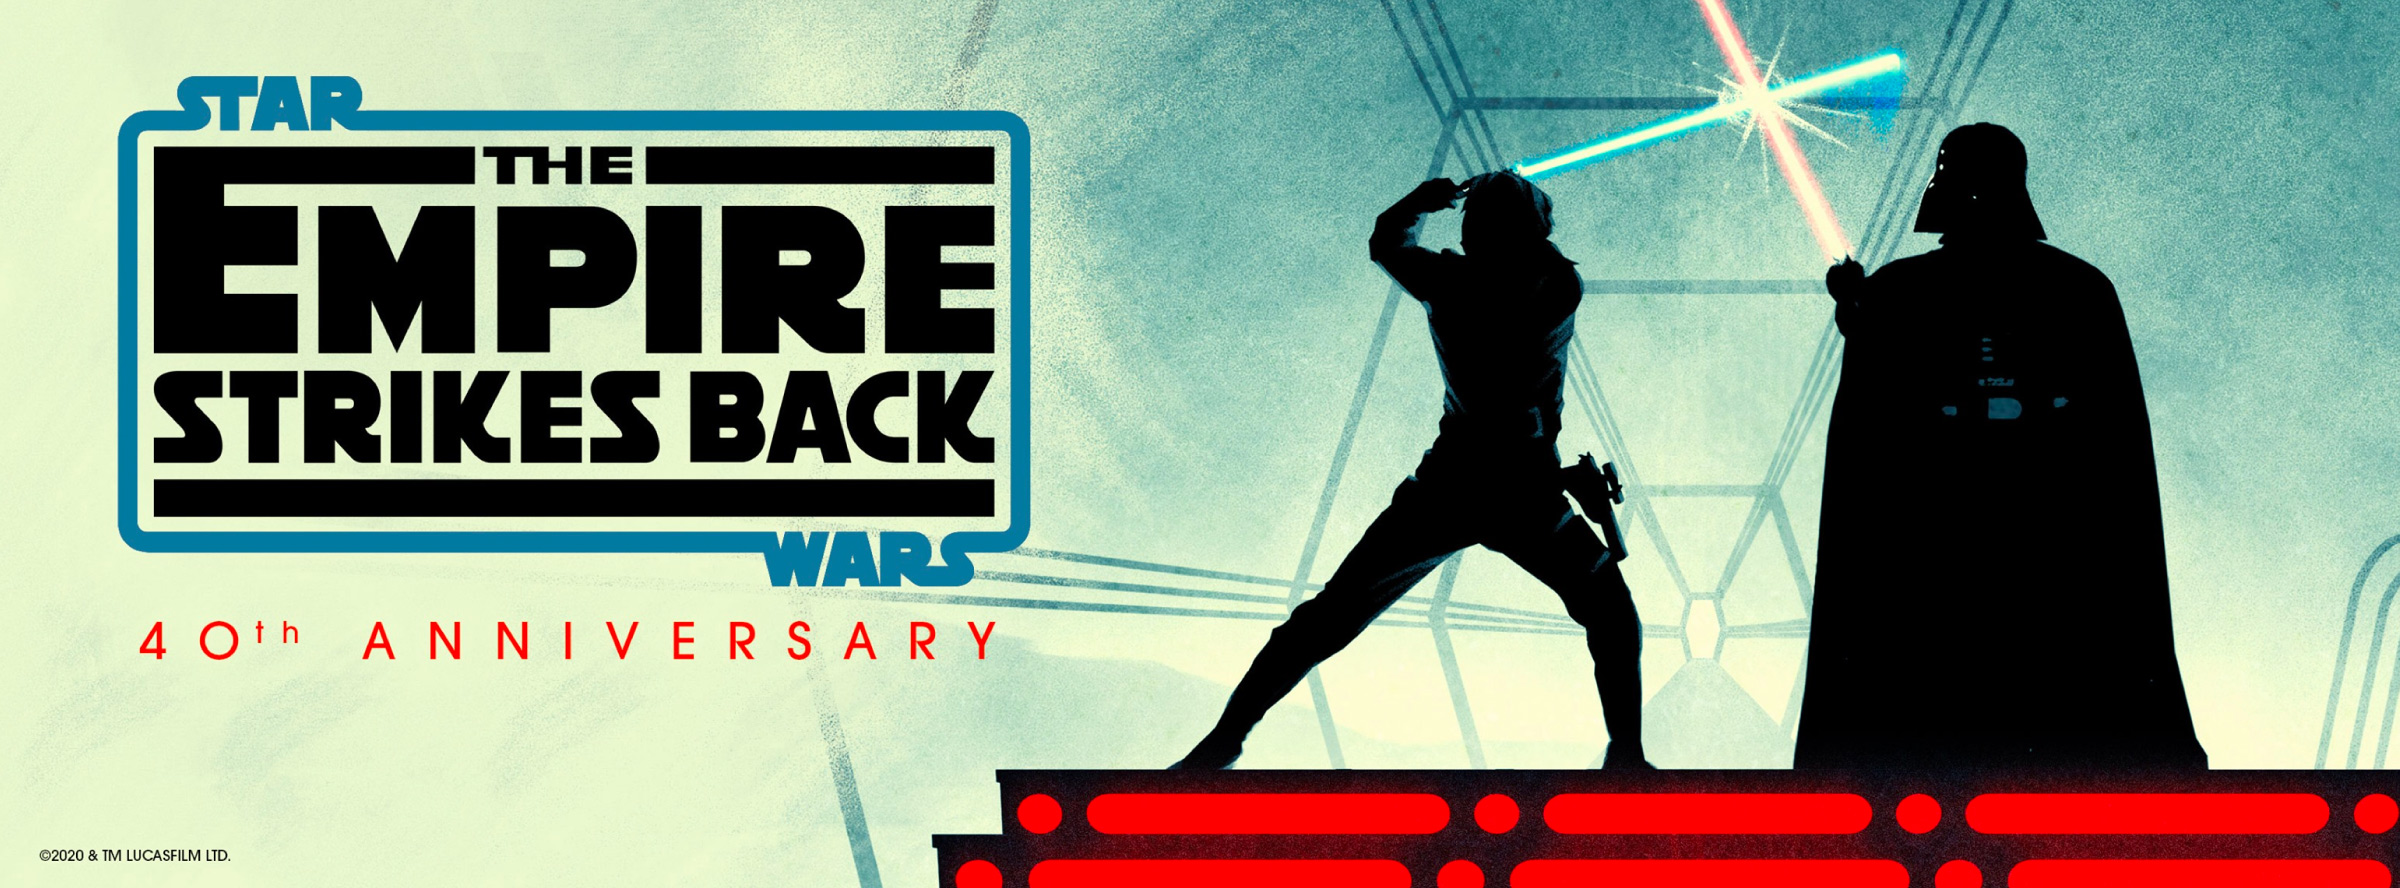 Star-Wars-Episode-V-_-The-Empire-Strikes-Back-40th-Anniversary-*SPECIAL-$5-FEATURE*-Trailer-and-Info